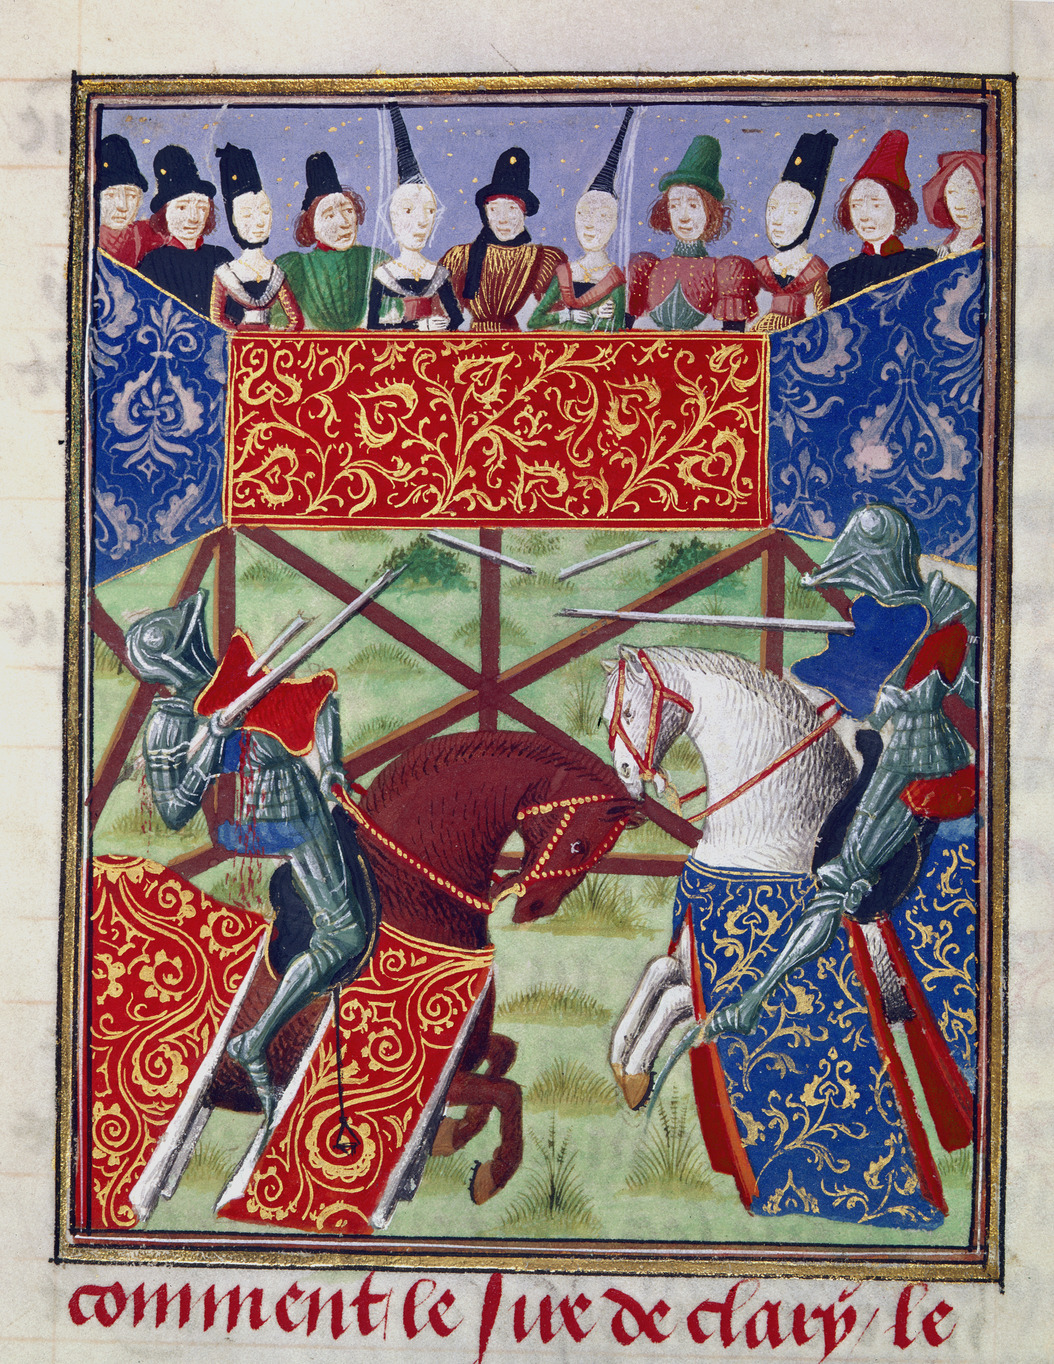 Joust between Pierre de Courtenay and the Sire de Clary, cr. 1470-5, Flemish